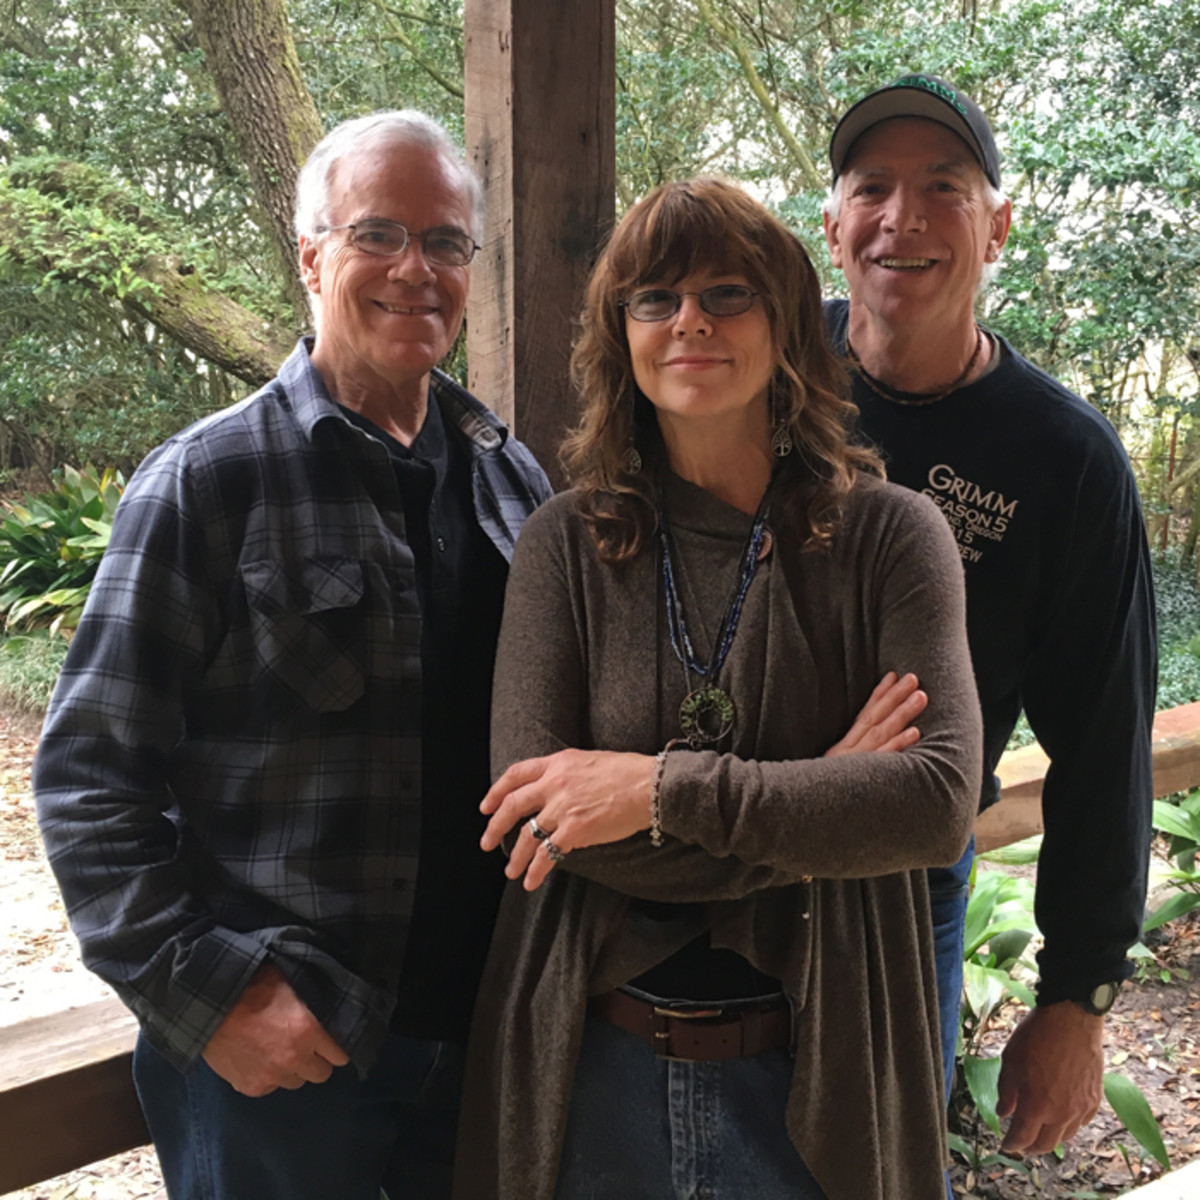 THE COWSILLS 2018 (L-R): Bob Cowsill, Susan Cowsill and Paul Cowsill at Dockside Studio in Maurice, Louisiana. Photo by Cézanne Nails, courtesy of The Cowsills.